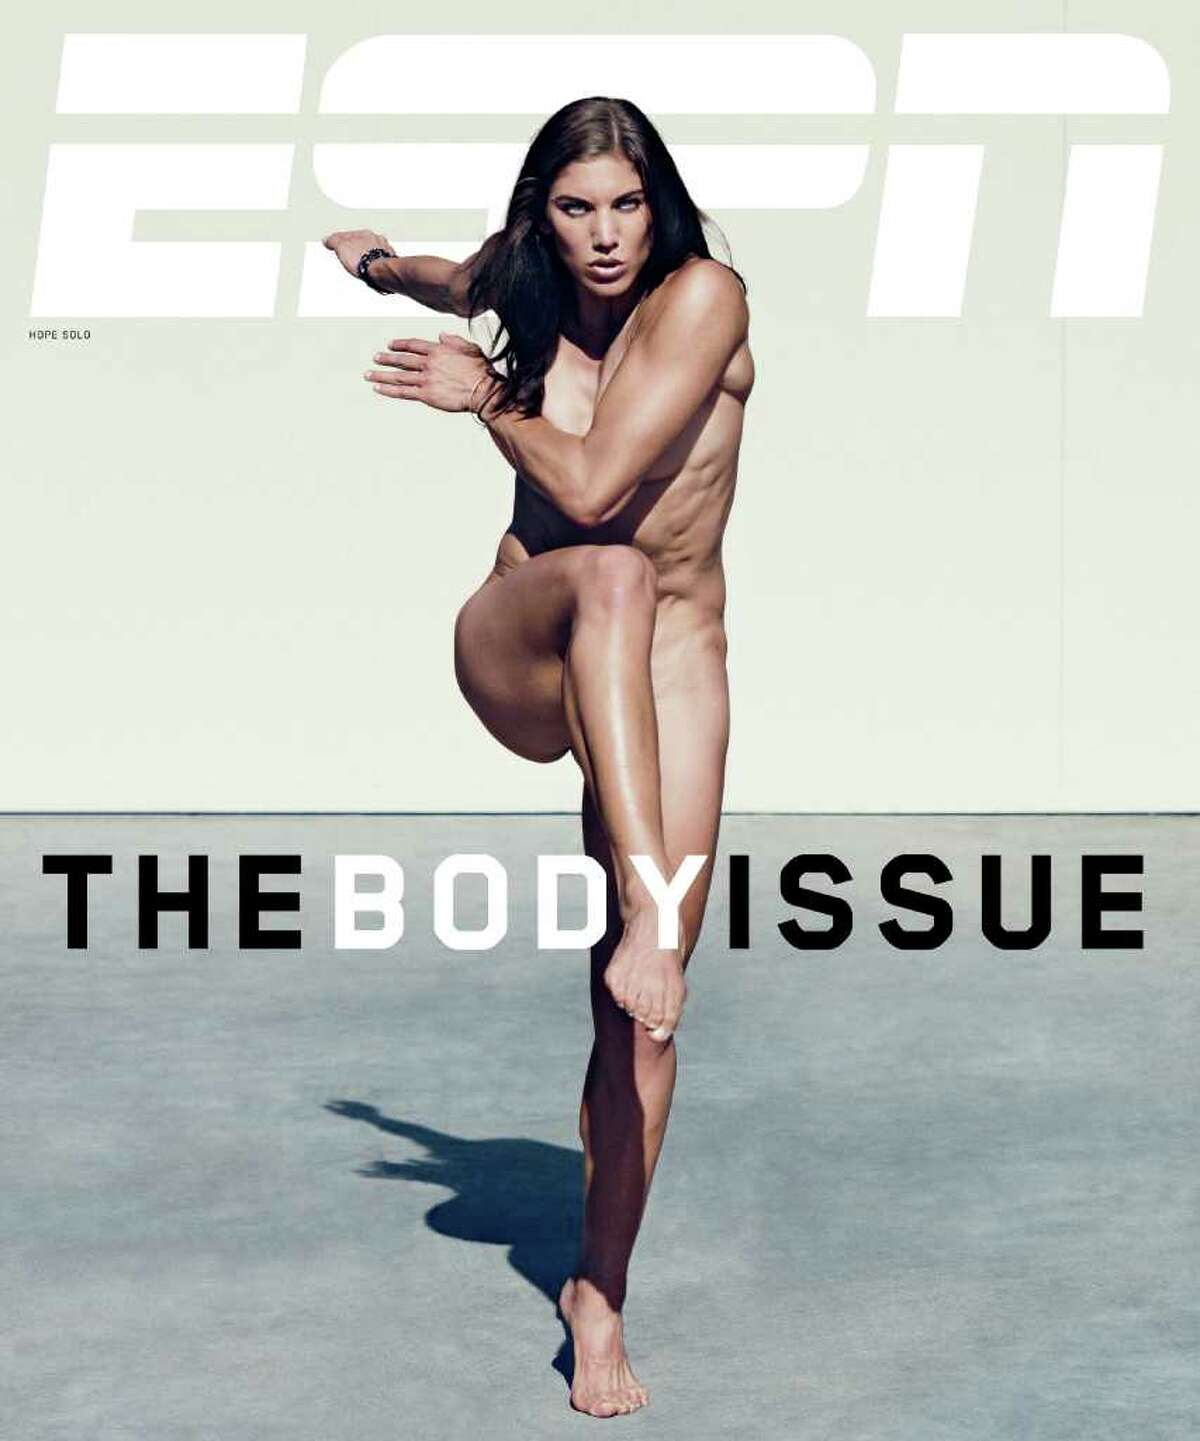 US soccer star Hope Solo poses for ESPN's Body Issue.